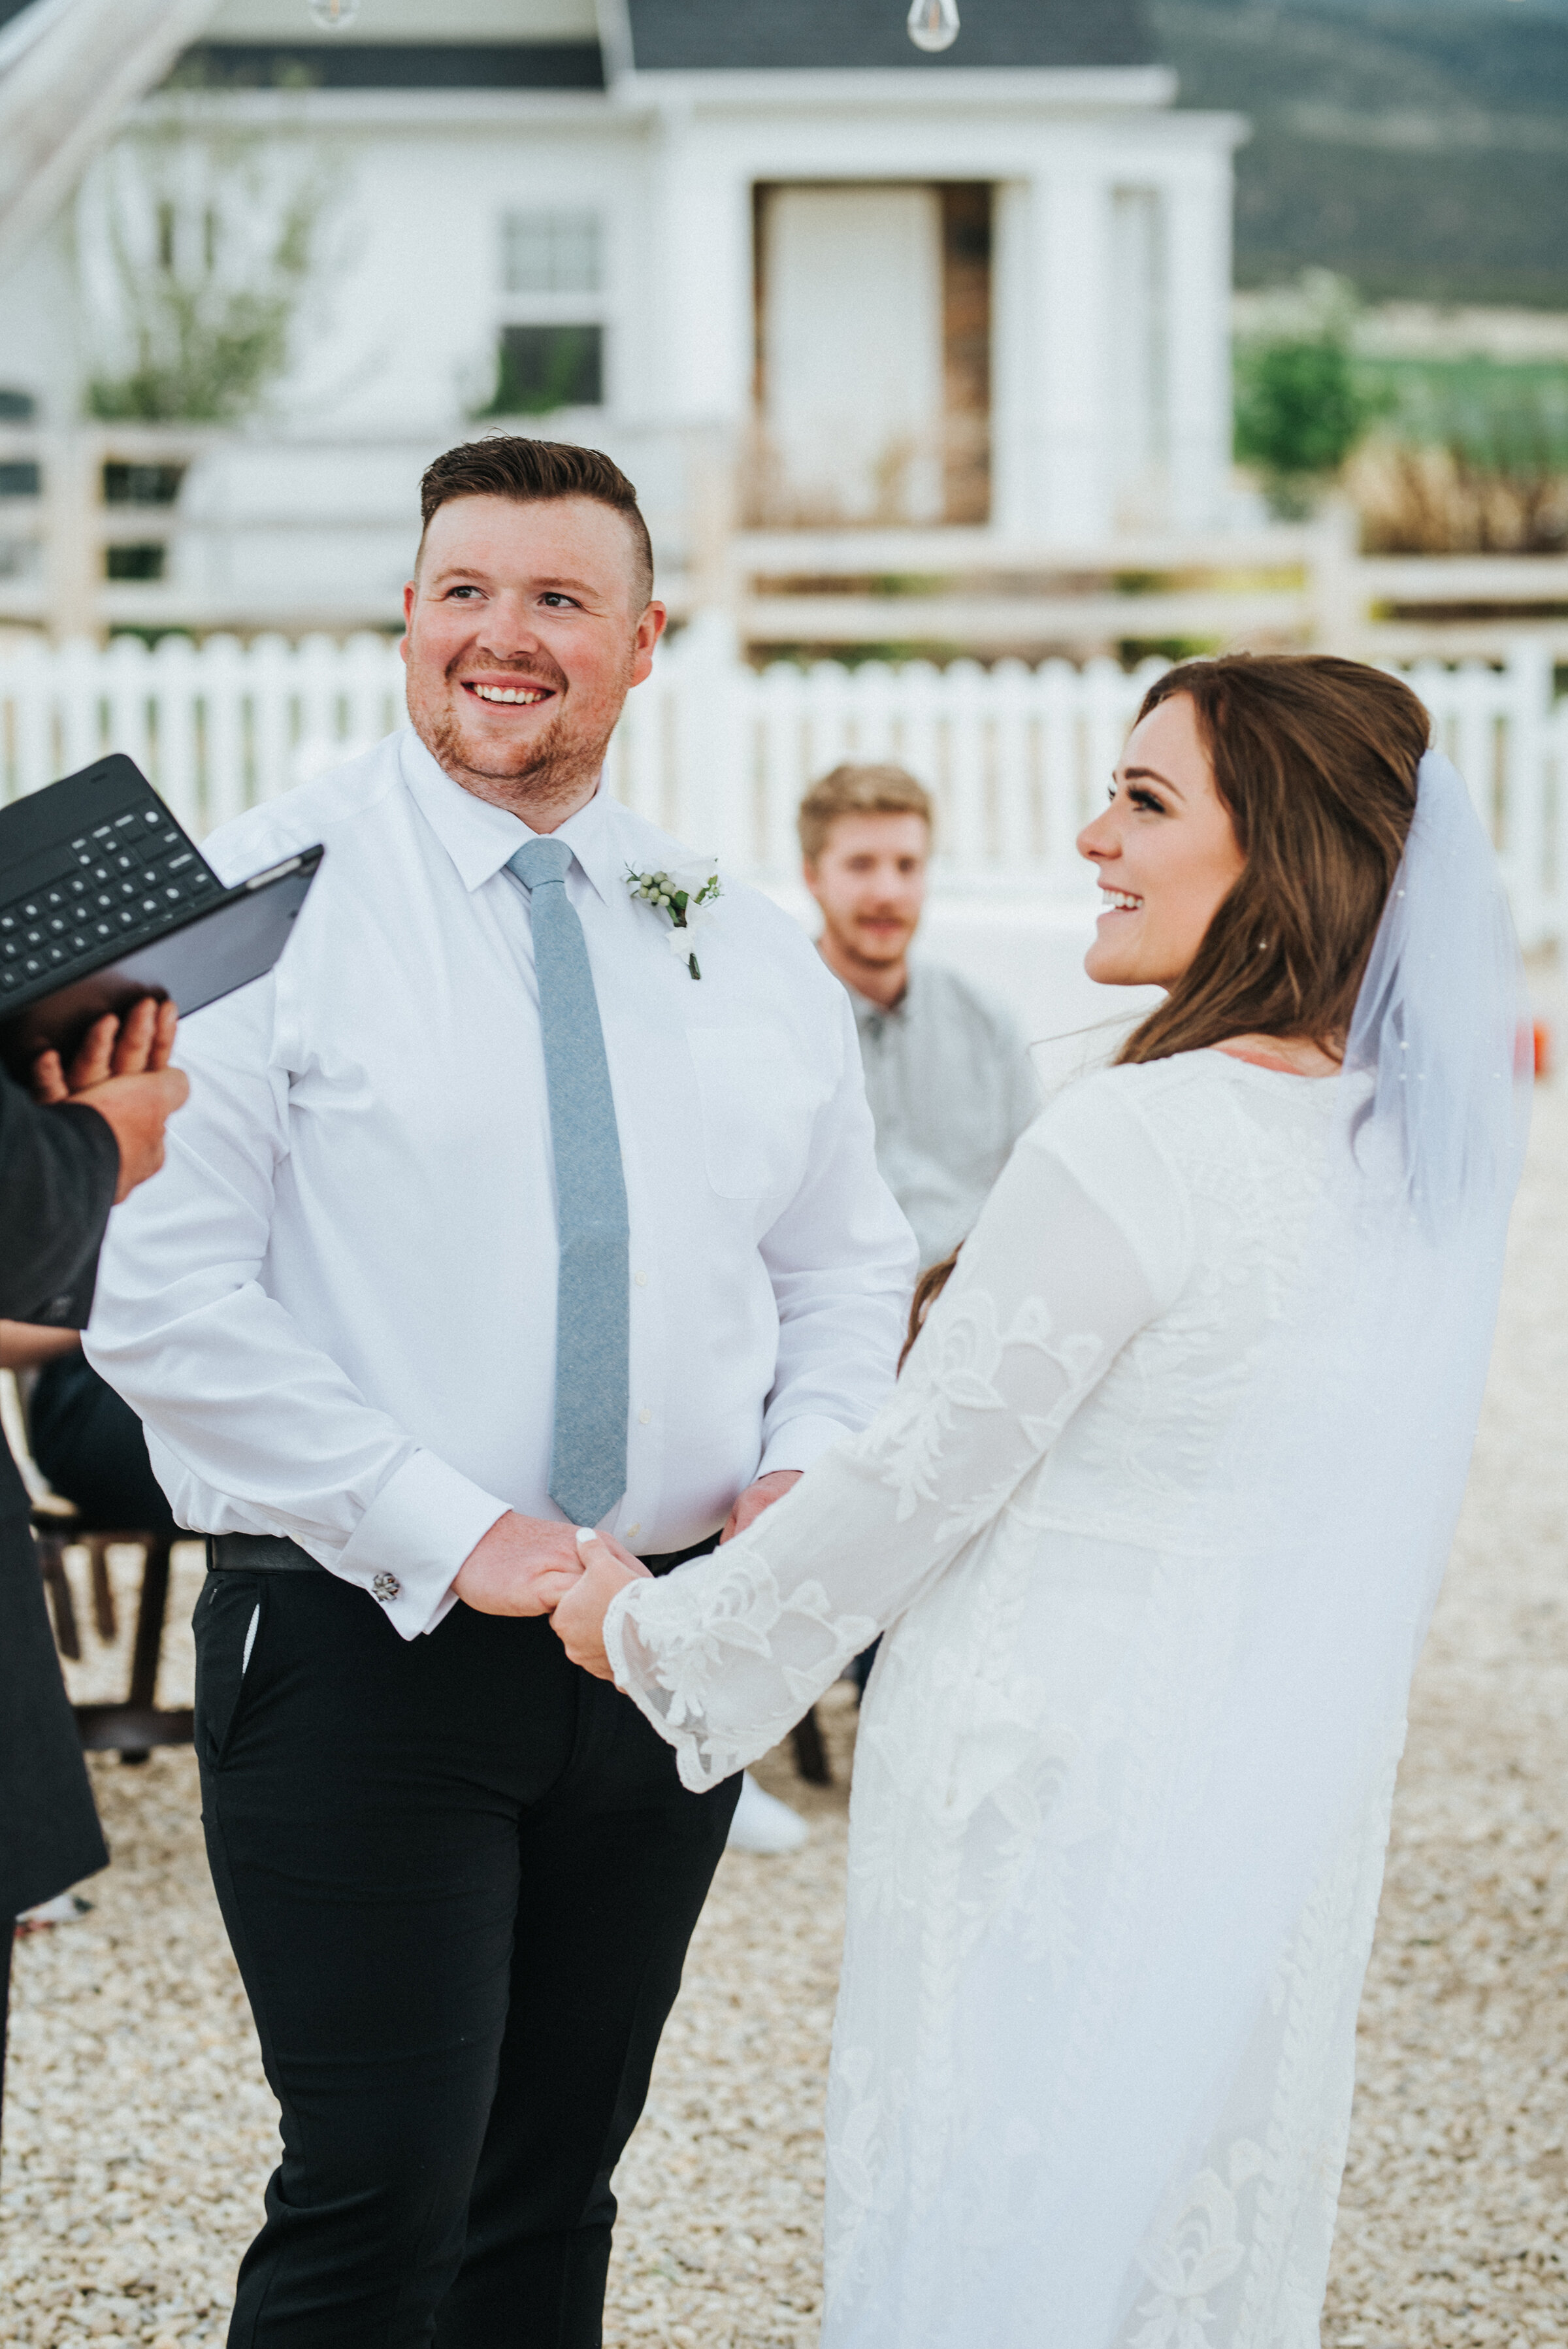 The bride and groom on their wedding day getting ready to exchange vows during their intimate outdoor wedding ceremony. photoshoot in Ephraim Utah photography wedding outdoor location western inspired rustic Airbnb photo aesthetic #ephraimutah #utahphotography #weddingdayphotography #gettingmarried #rusticwedding #utahwedding #westernstyle #weddingphotoshoot